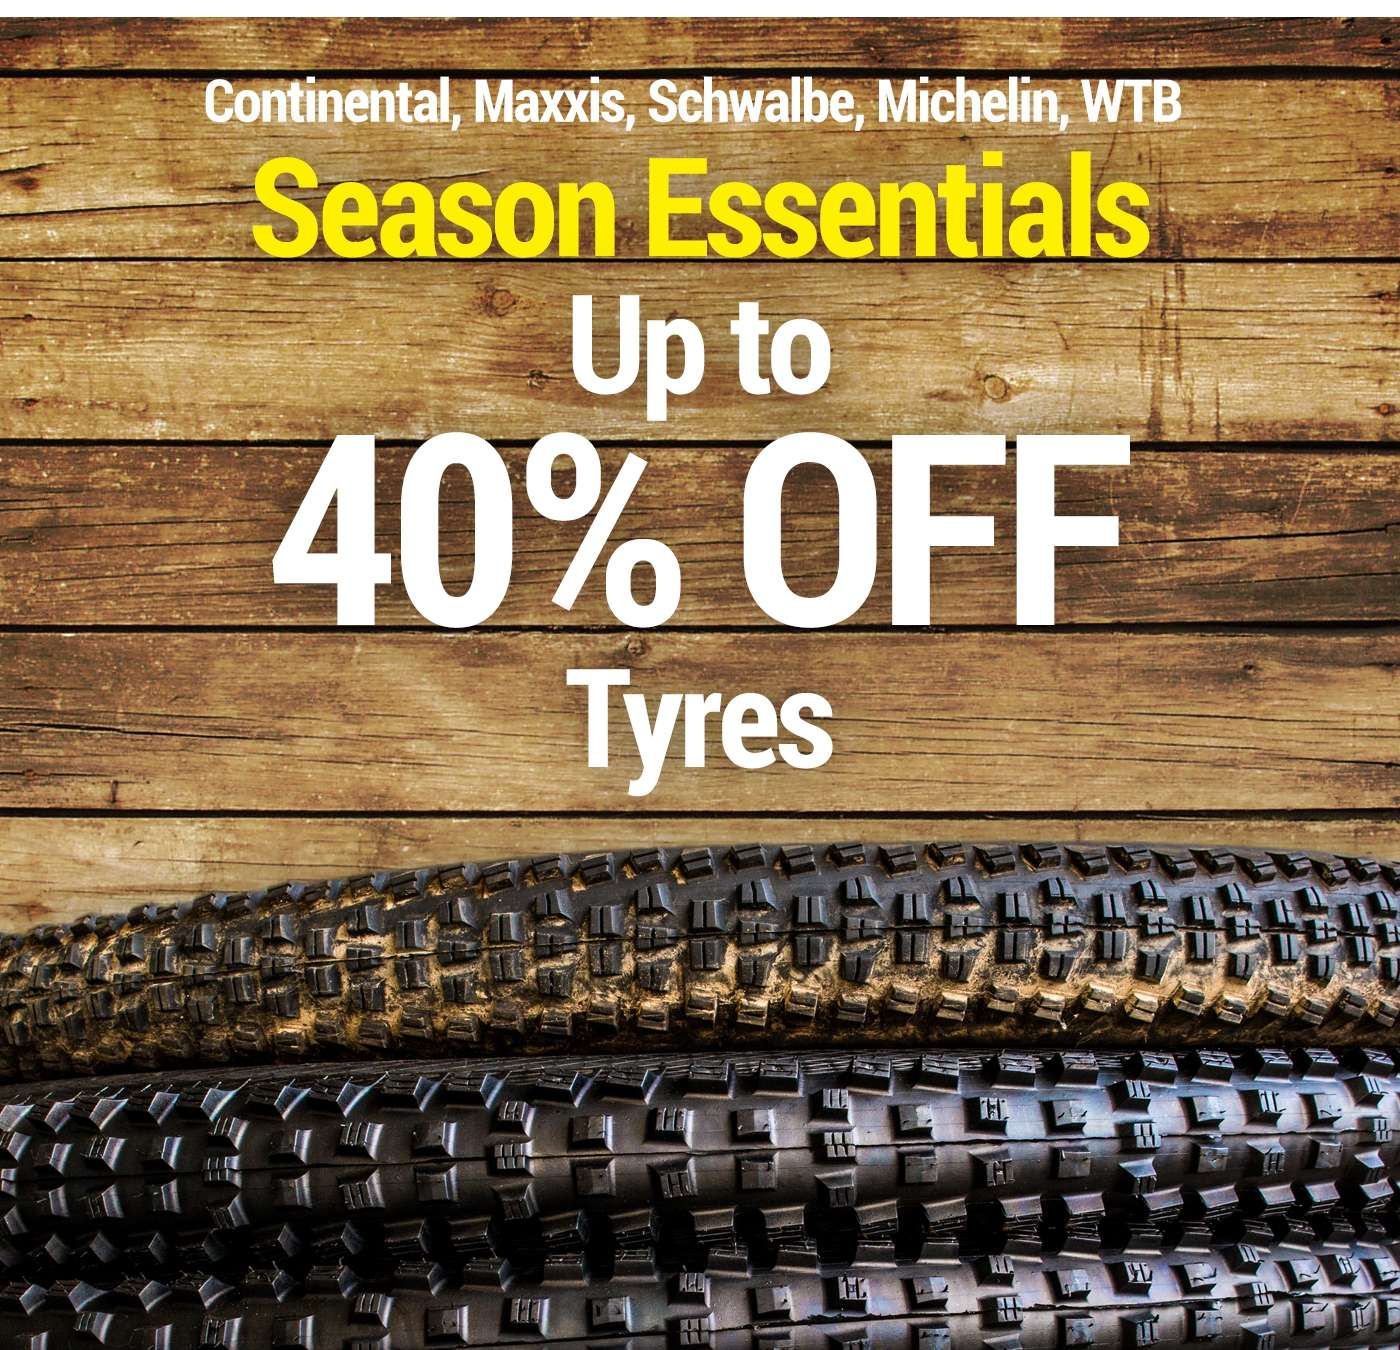 up to 40% off tyres